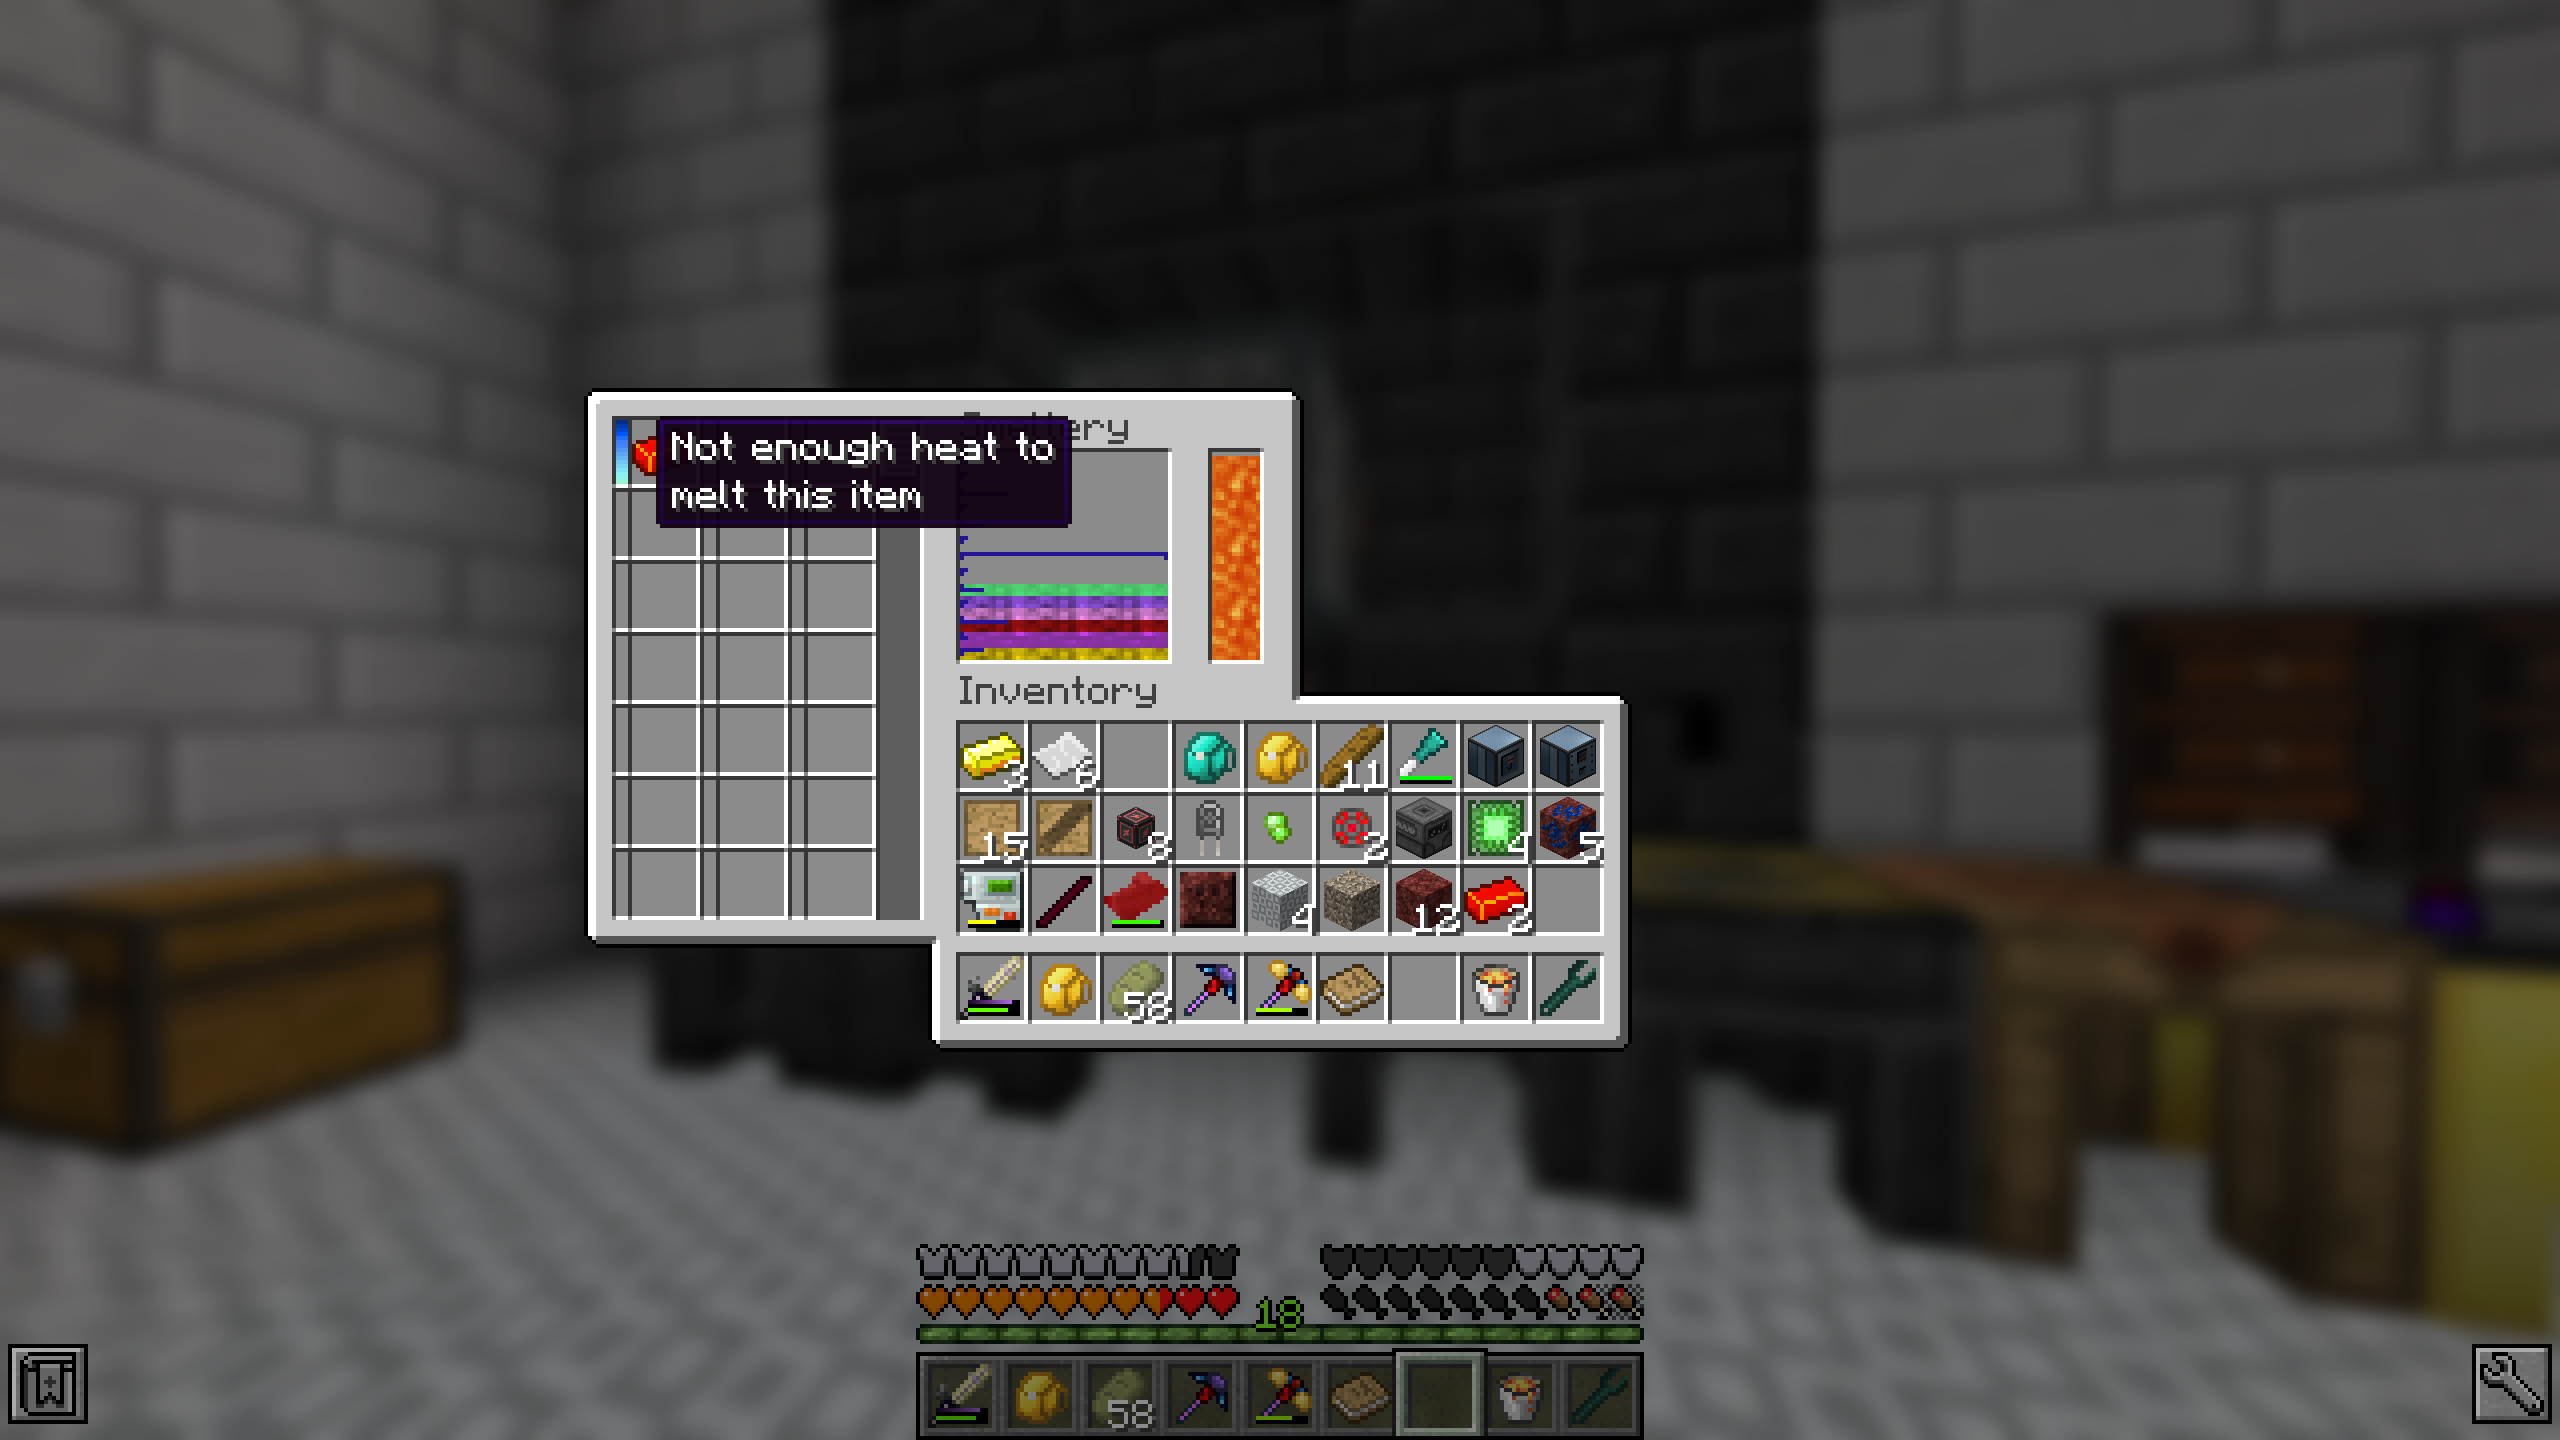 Cannot melt Demon Ingots in the Tinkers' Construct smeltery